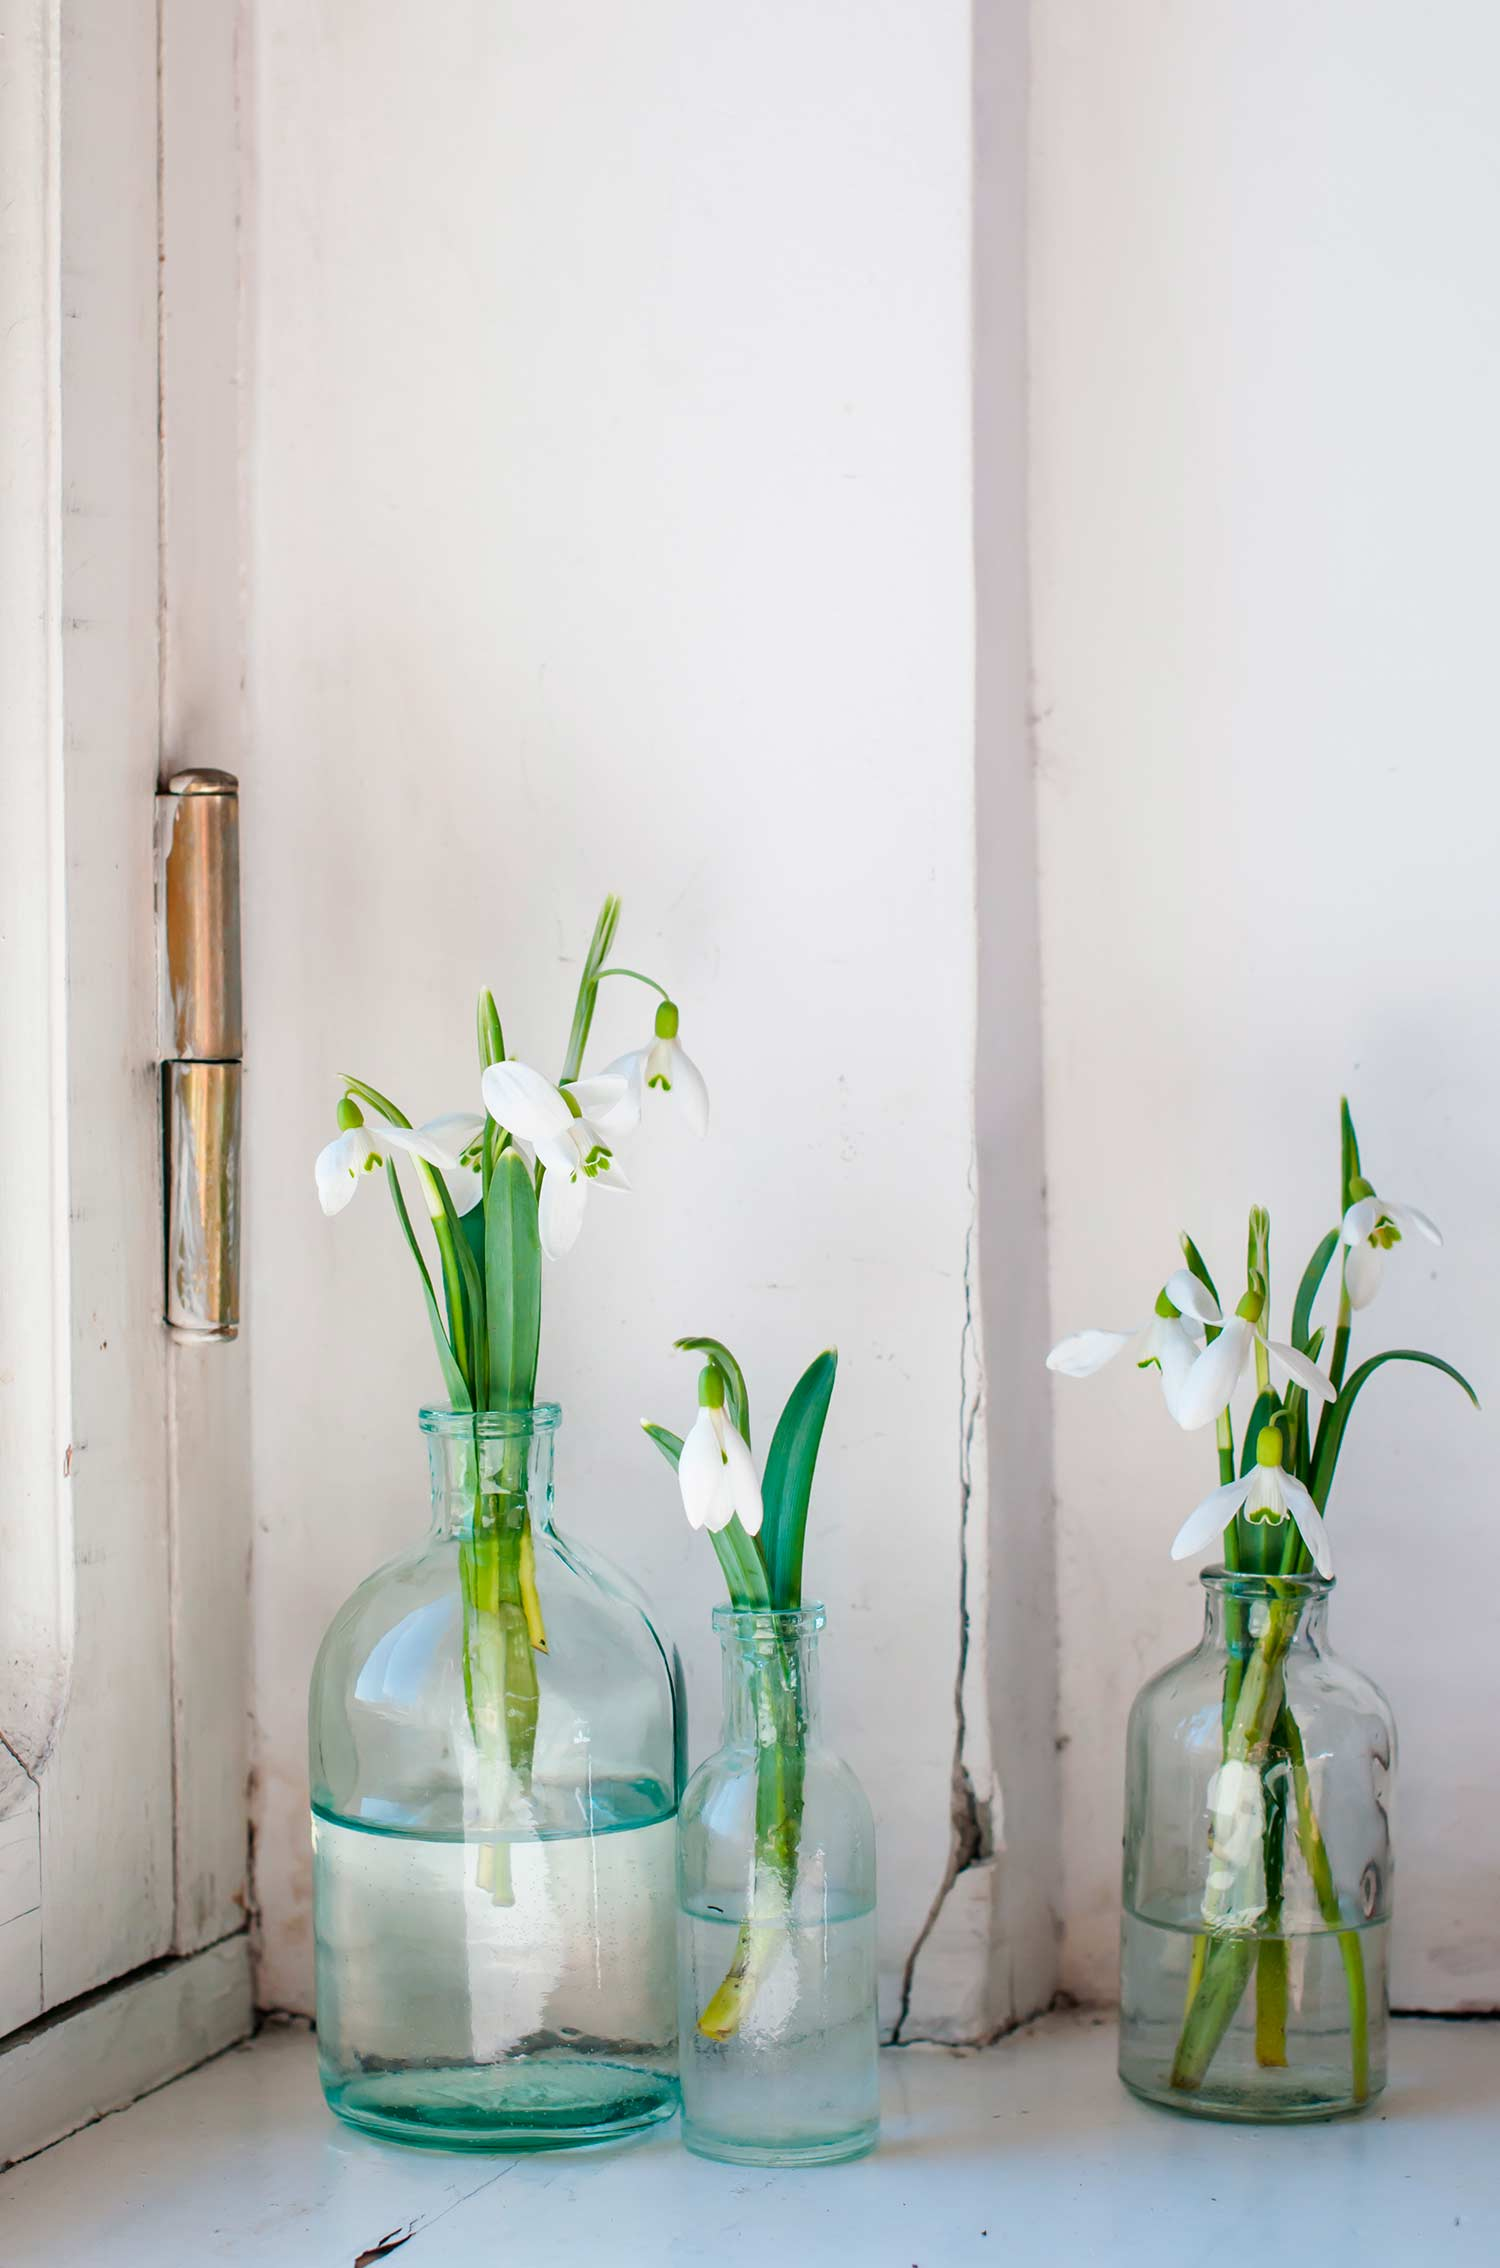 Jarrones De Cristal Decorados 10 Ideas Para Decorar Con Flores Westwing Magazine